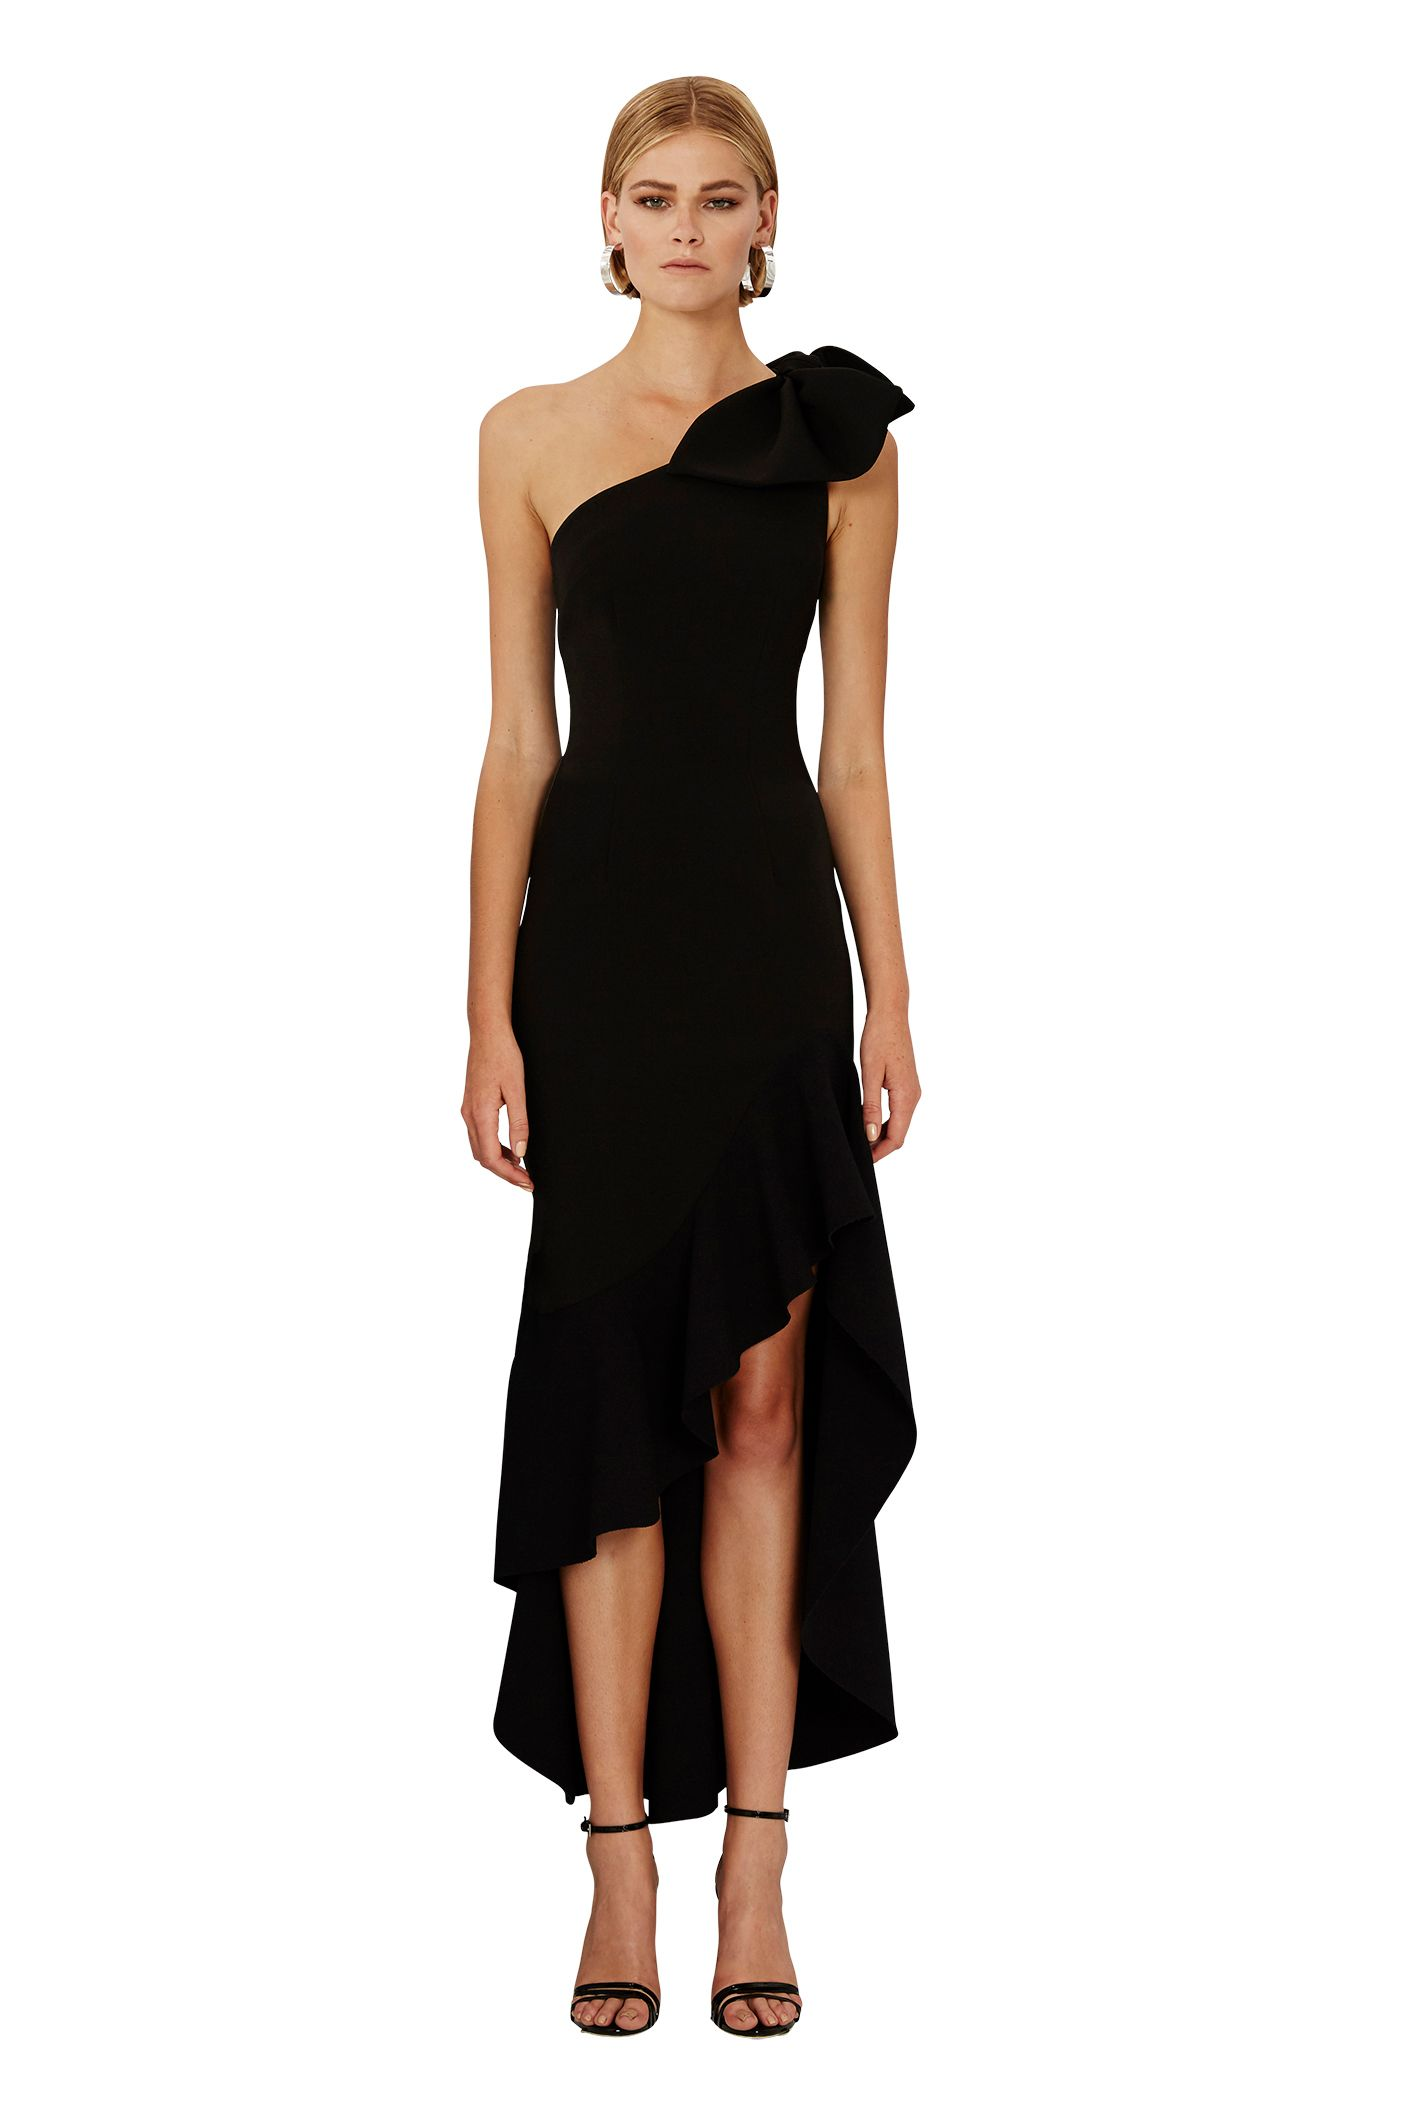 By johnny tie shoulder wave gown preorder